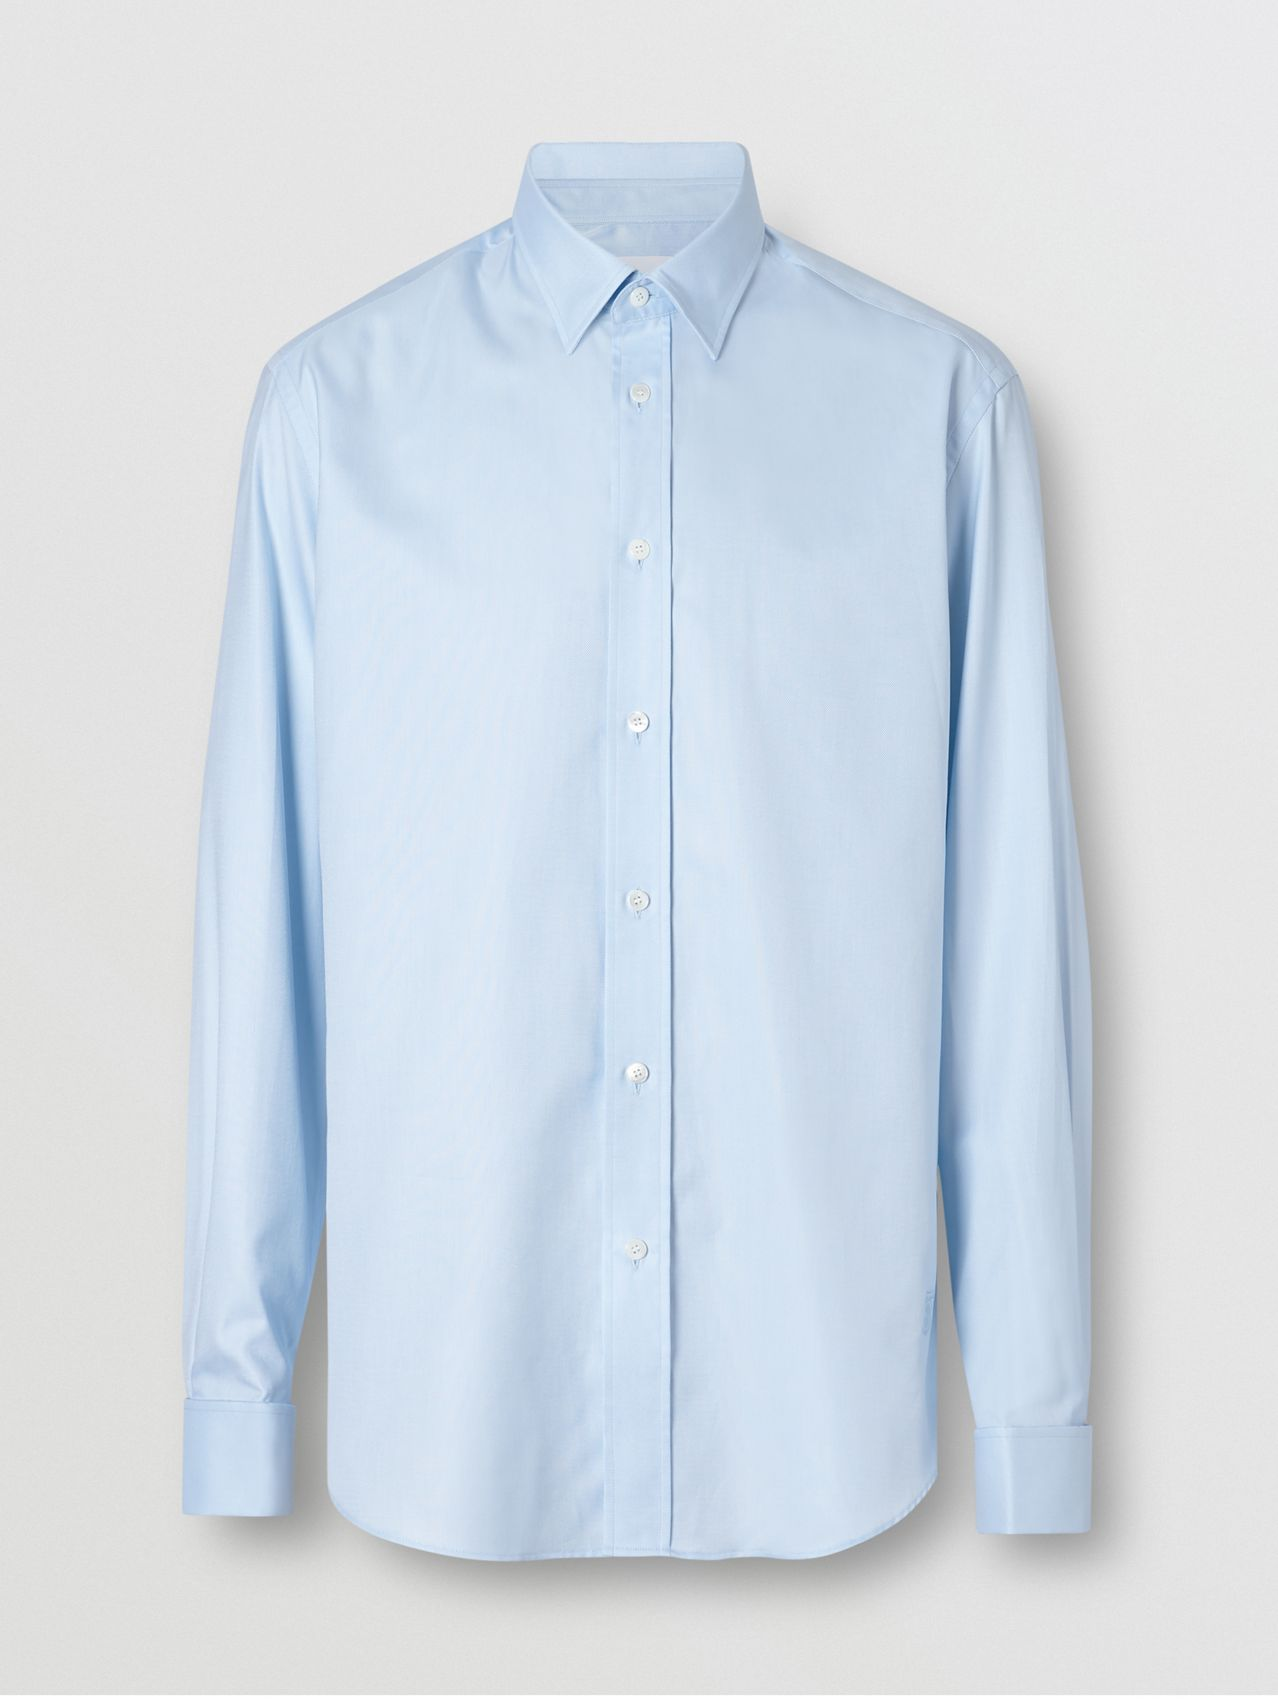 Classic Fit Monogram Motif Cotton Oxford Shirt (Pale Blue)